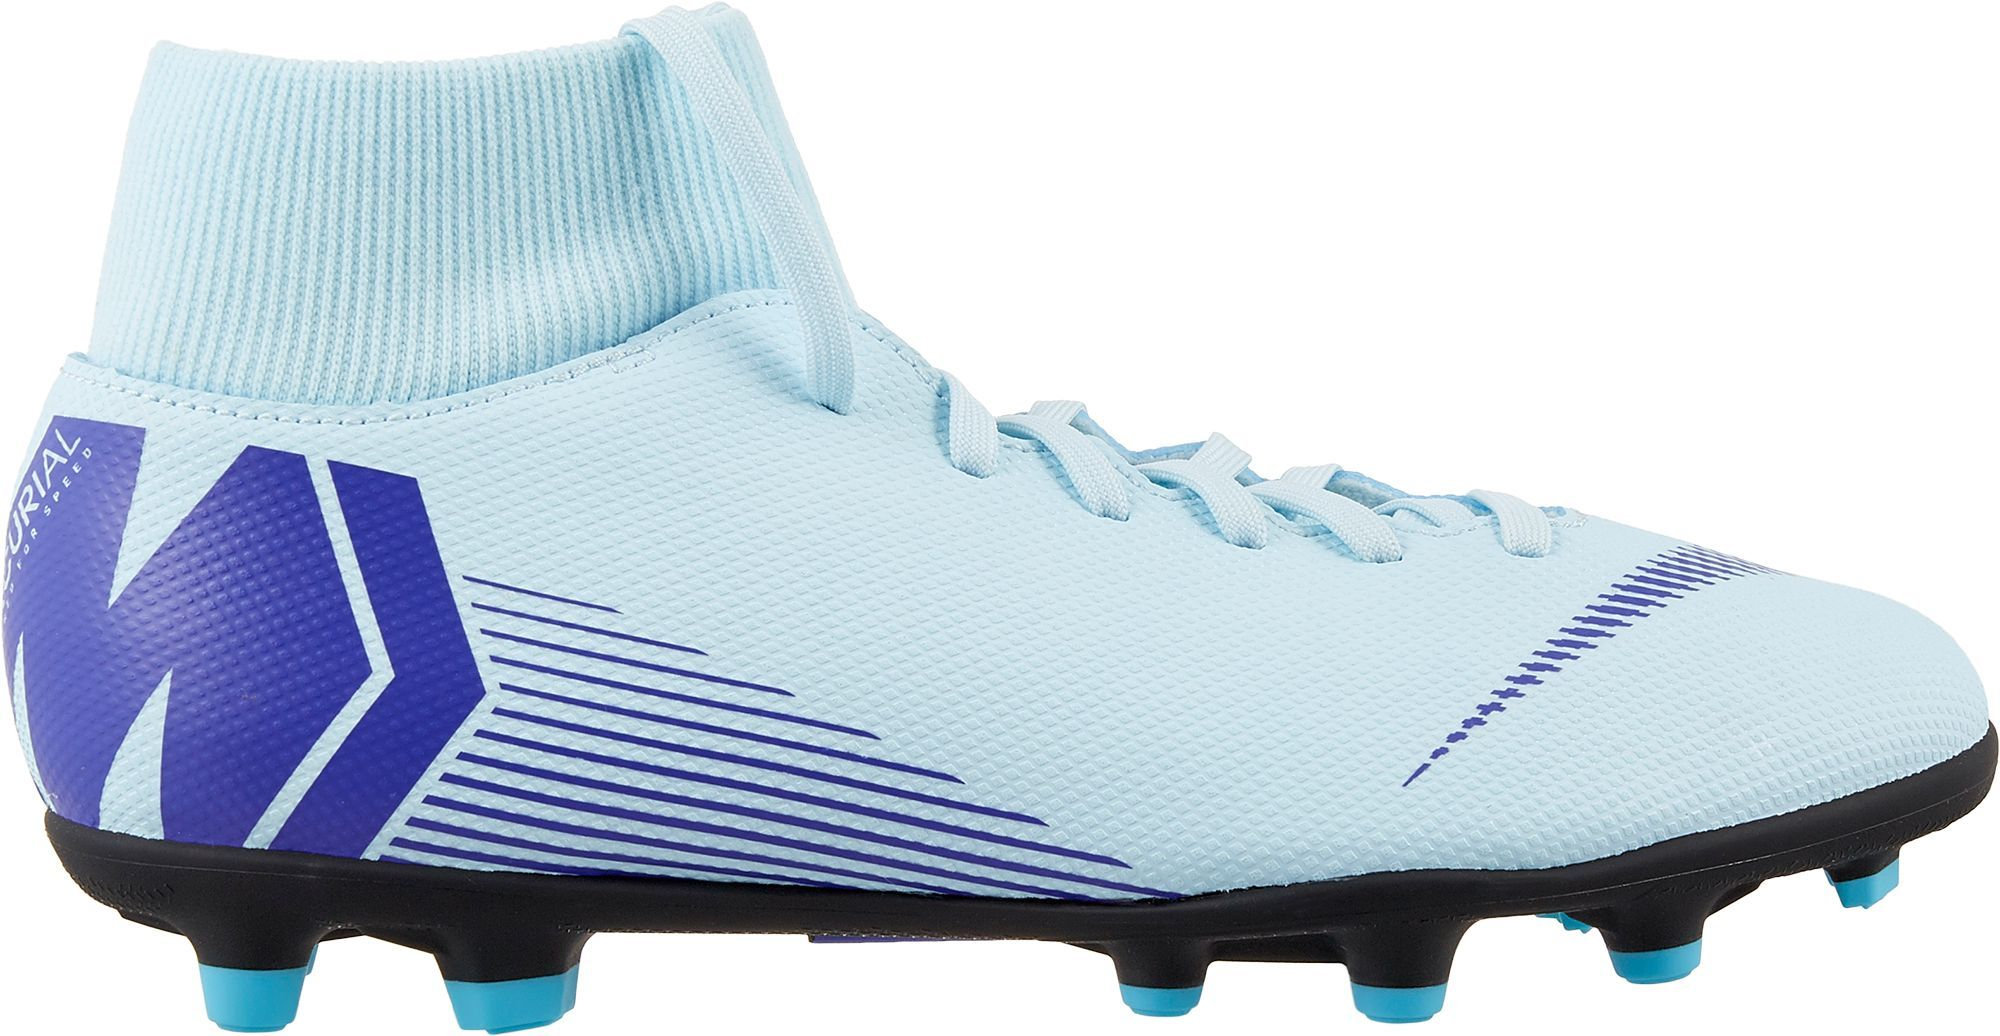 f9459b36d Nike Mercurial Superfly 6 Club MG Soccer Cleats, Women's, Size: M10/W11.5,  Blue